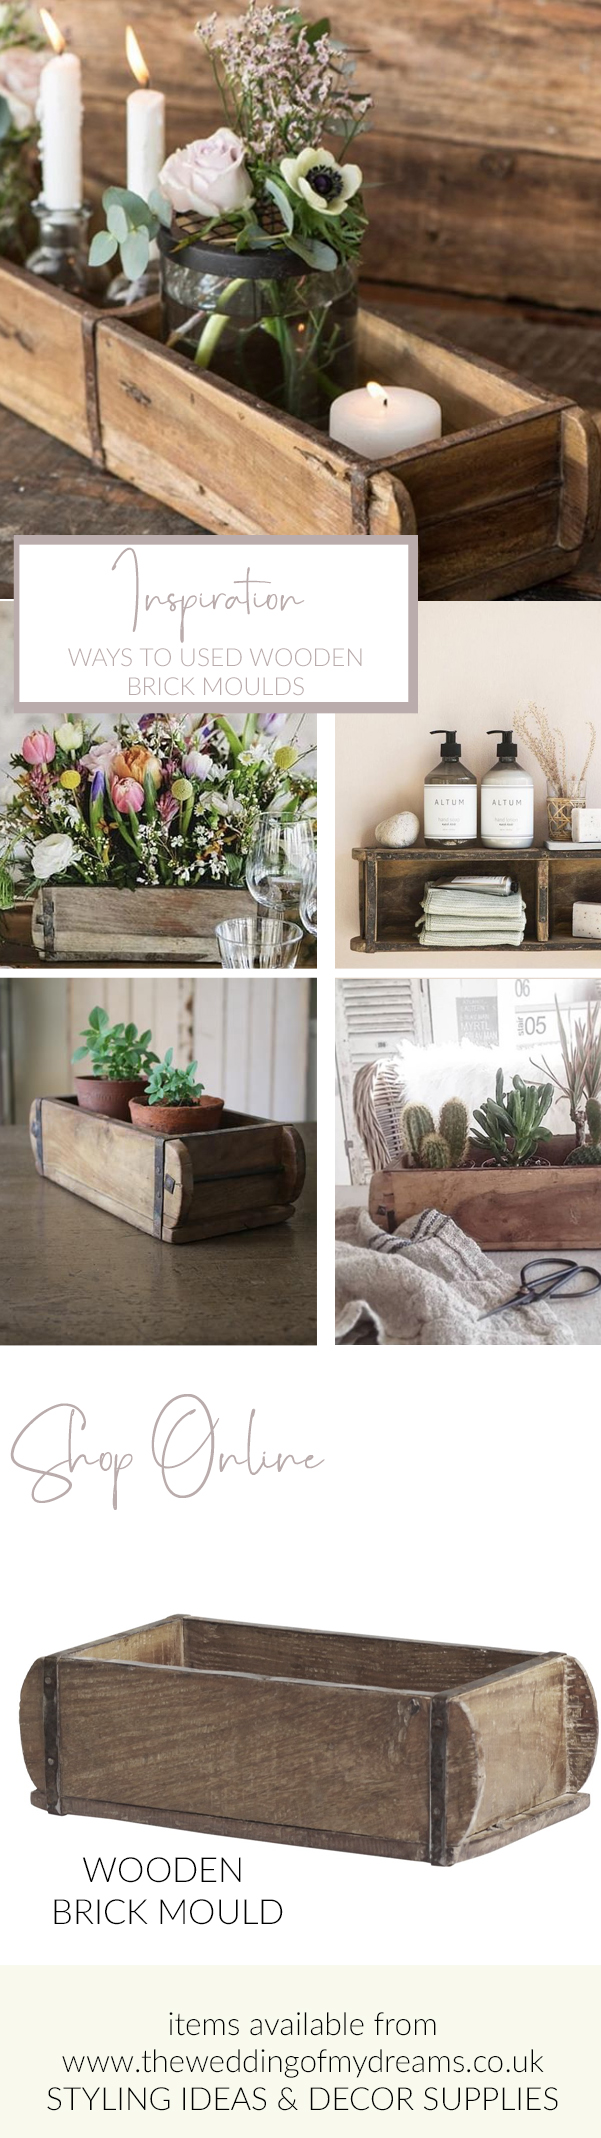 Ways to use wooden brick moulds at wedding decorations and home styling